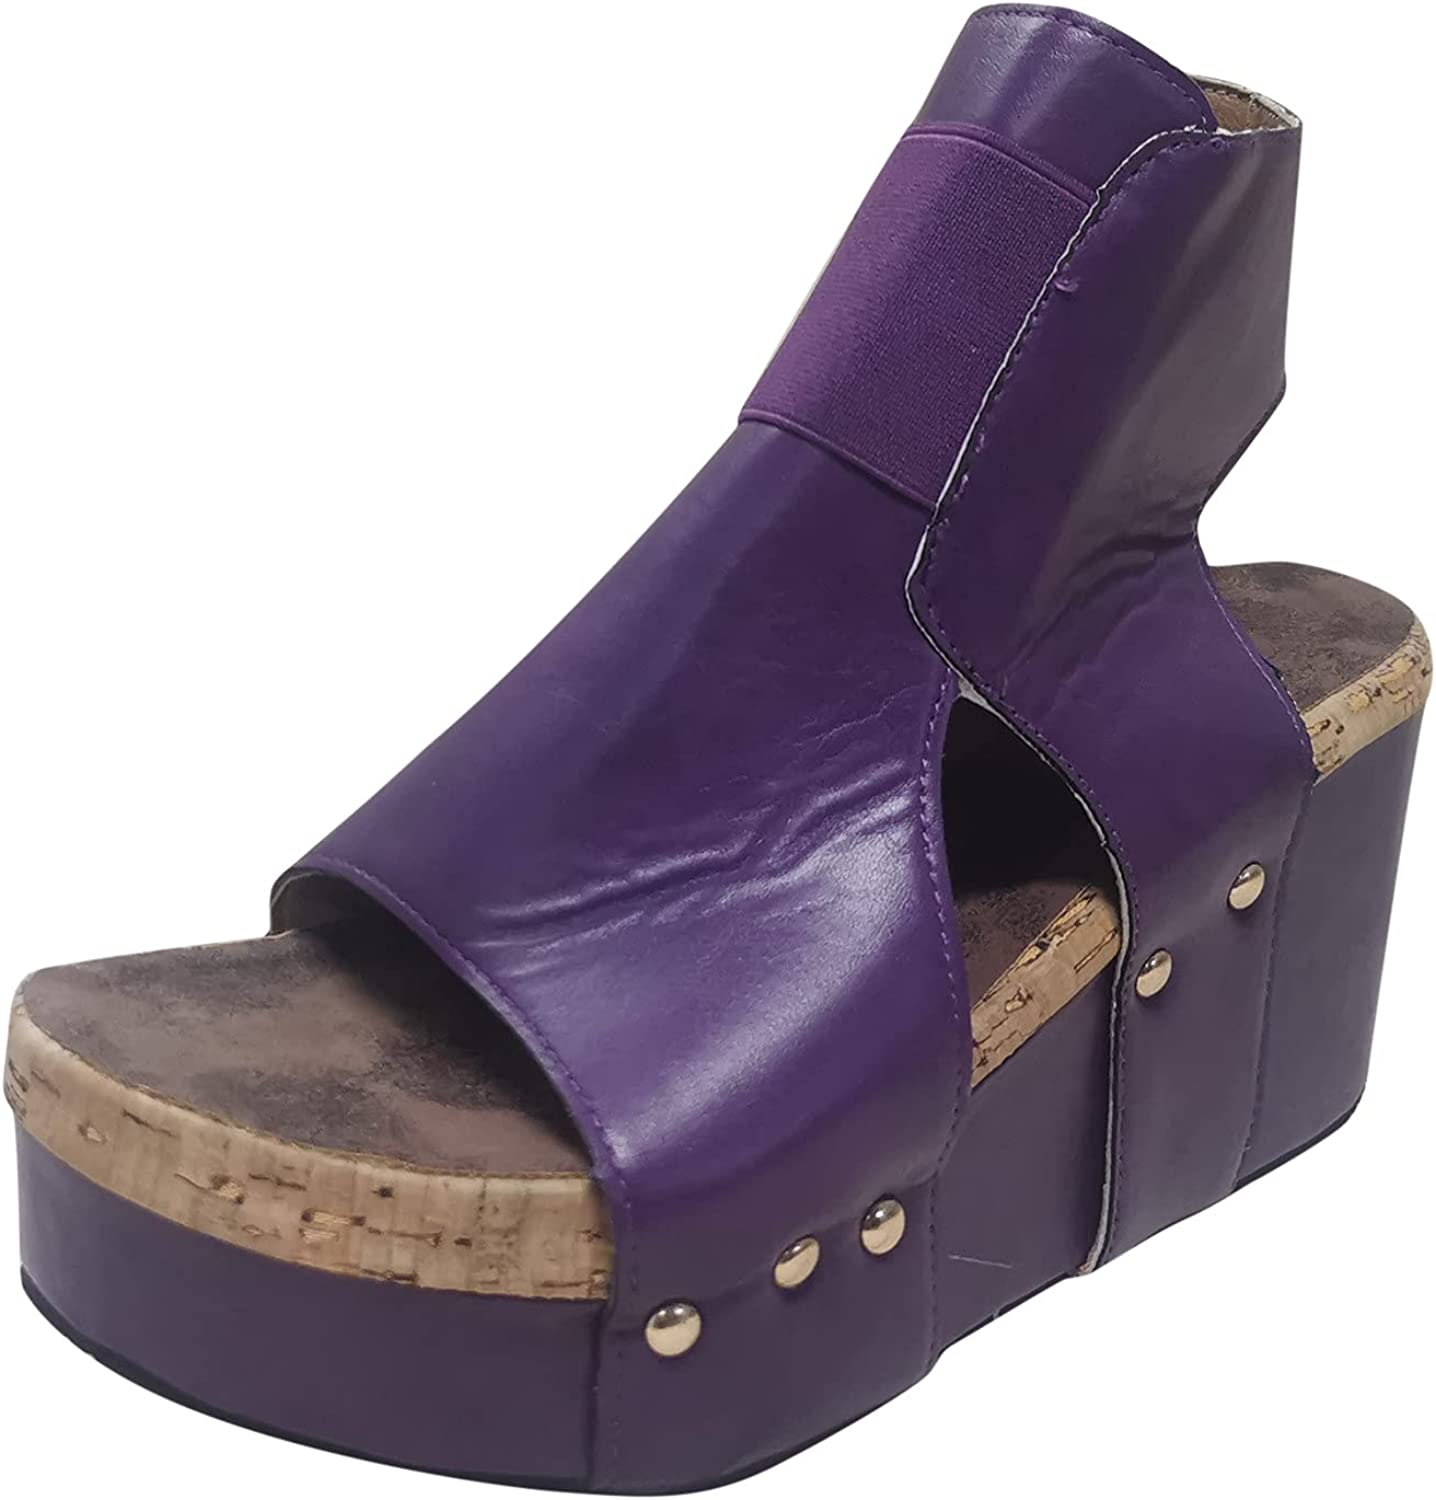 Women's Vintage Peep Toe Wedge Sandals Hollow Out Round Toe Zip Up Casual Shoes